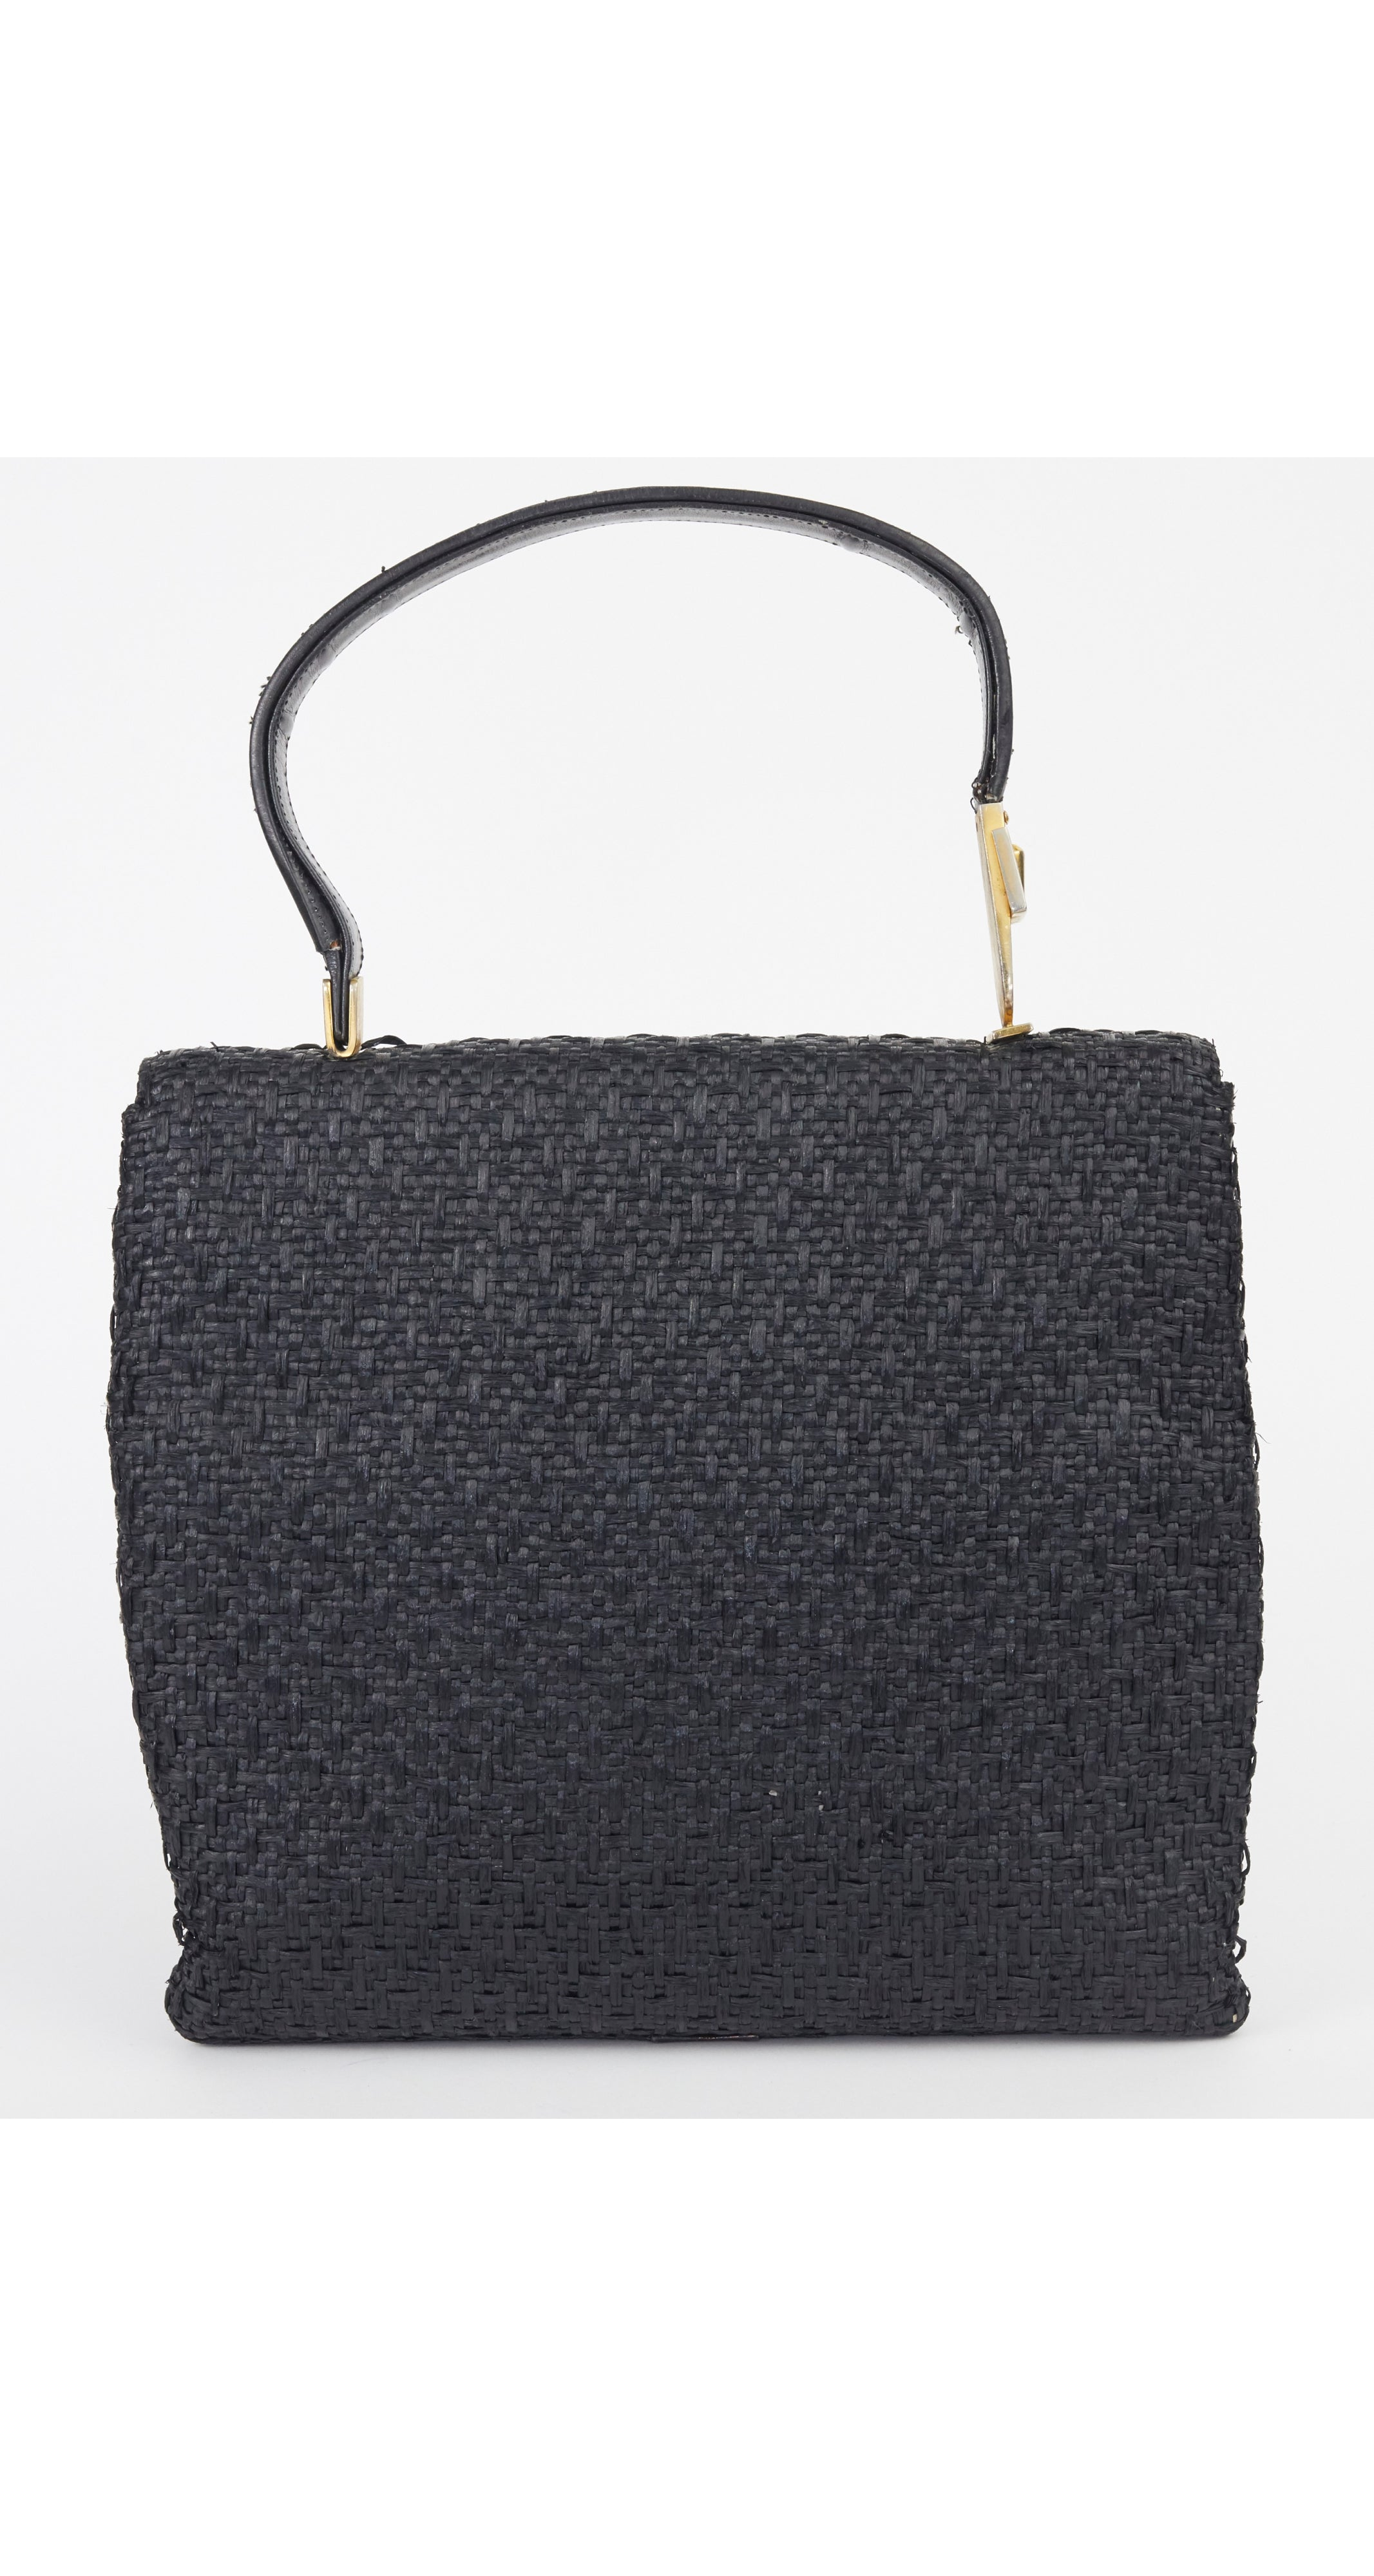 1950s Black Straw & Leather Top-Handle Bag